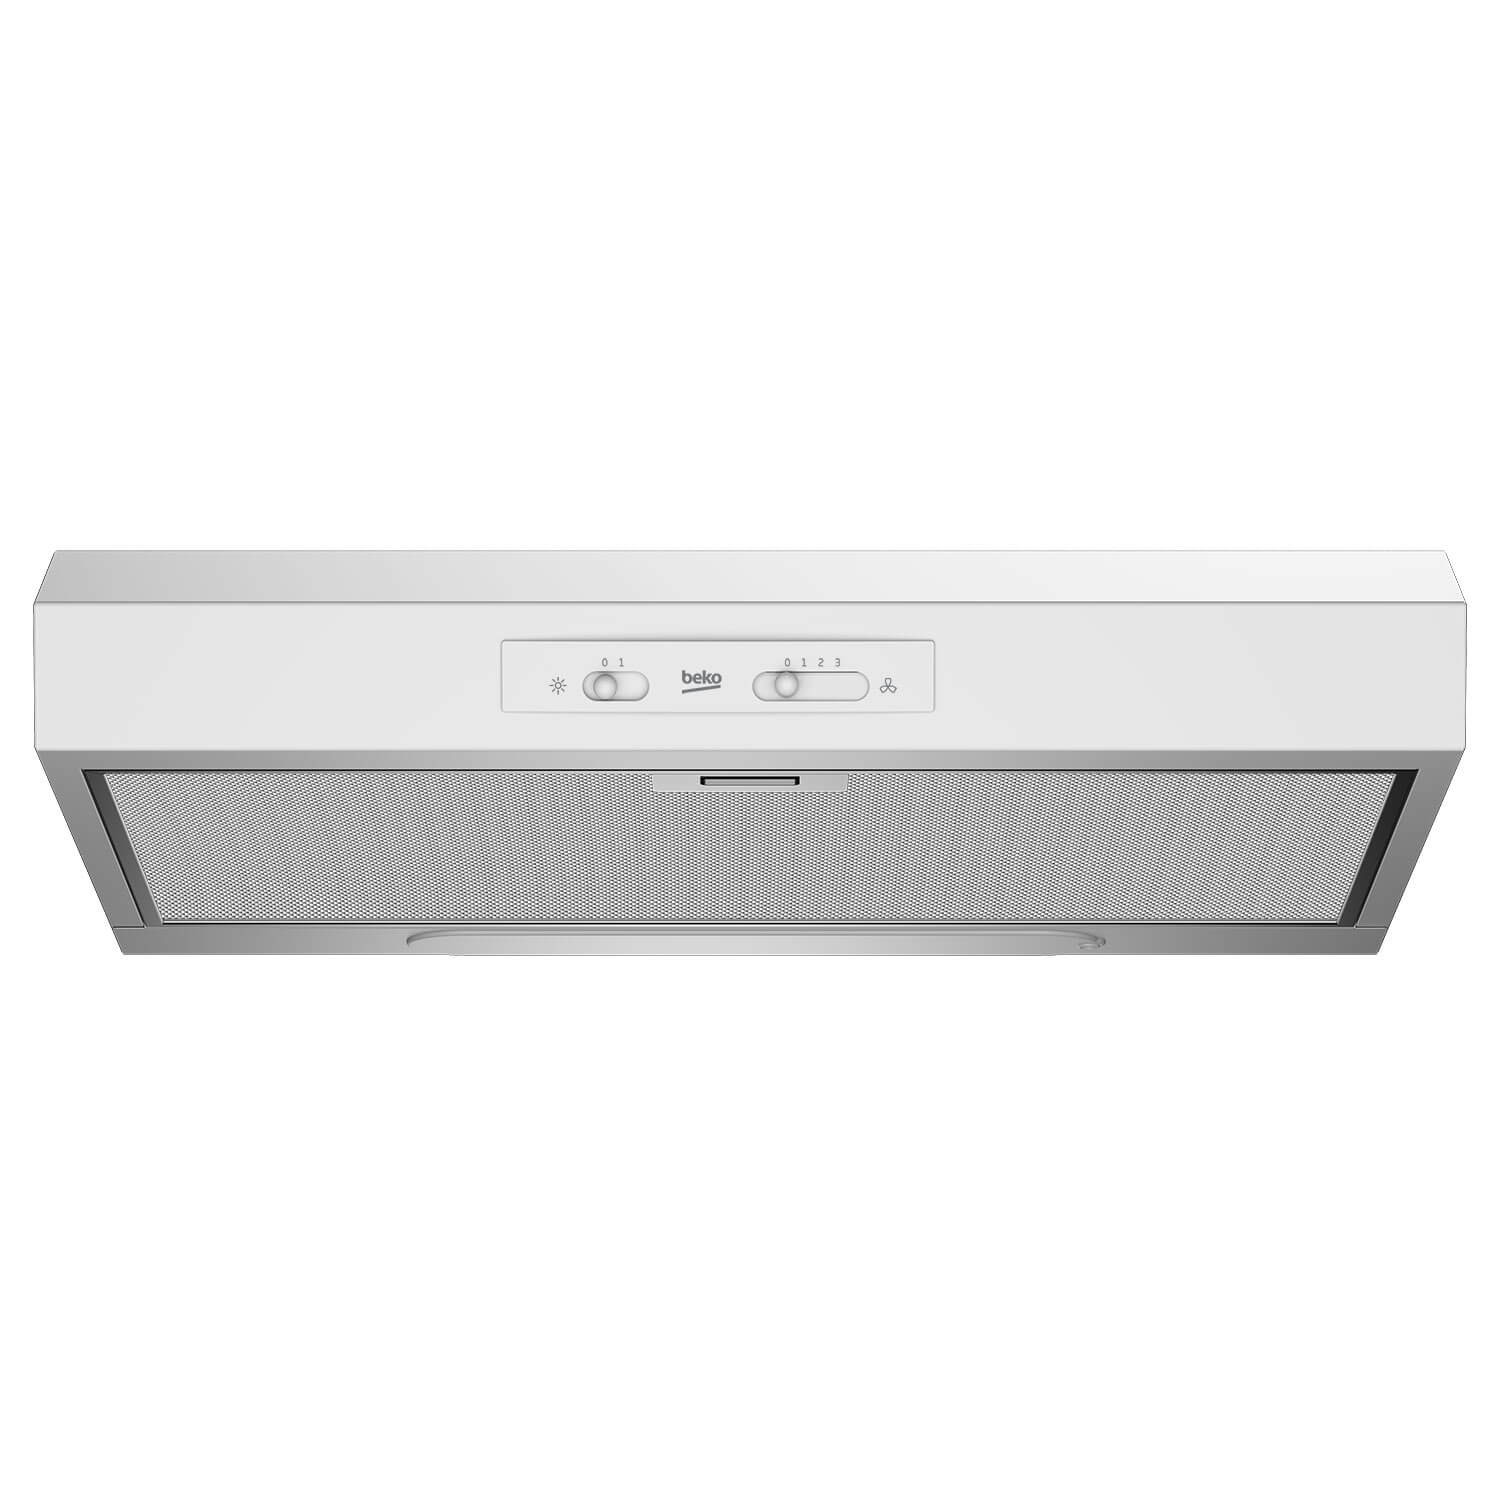 Hota traditionala Beko HNS61210W